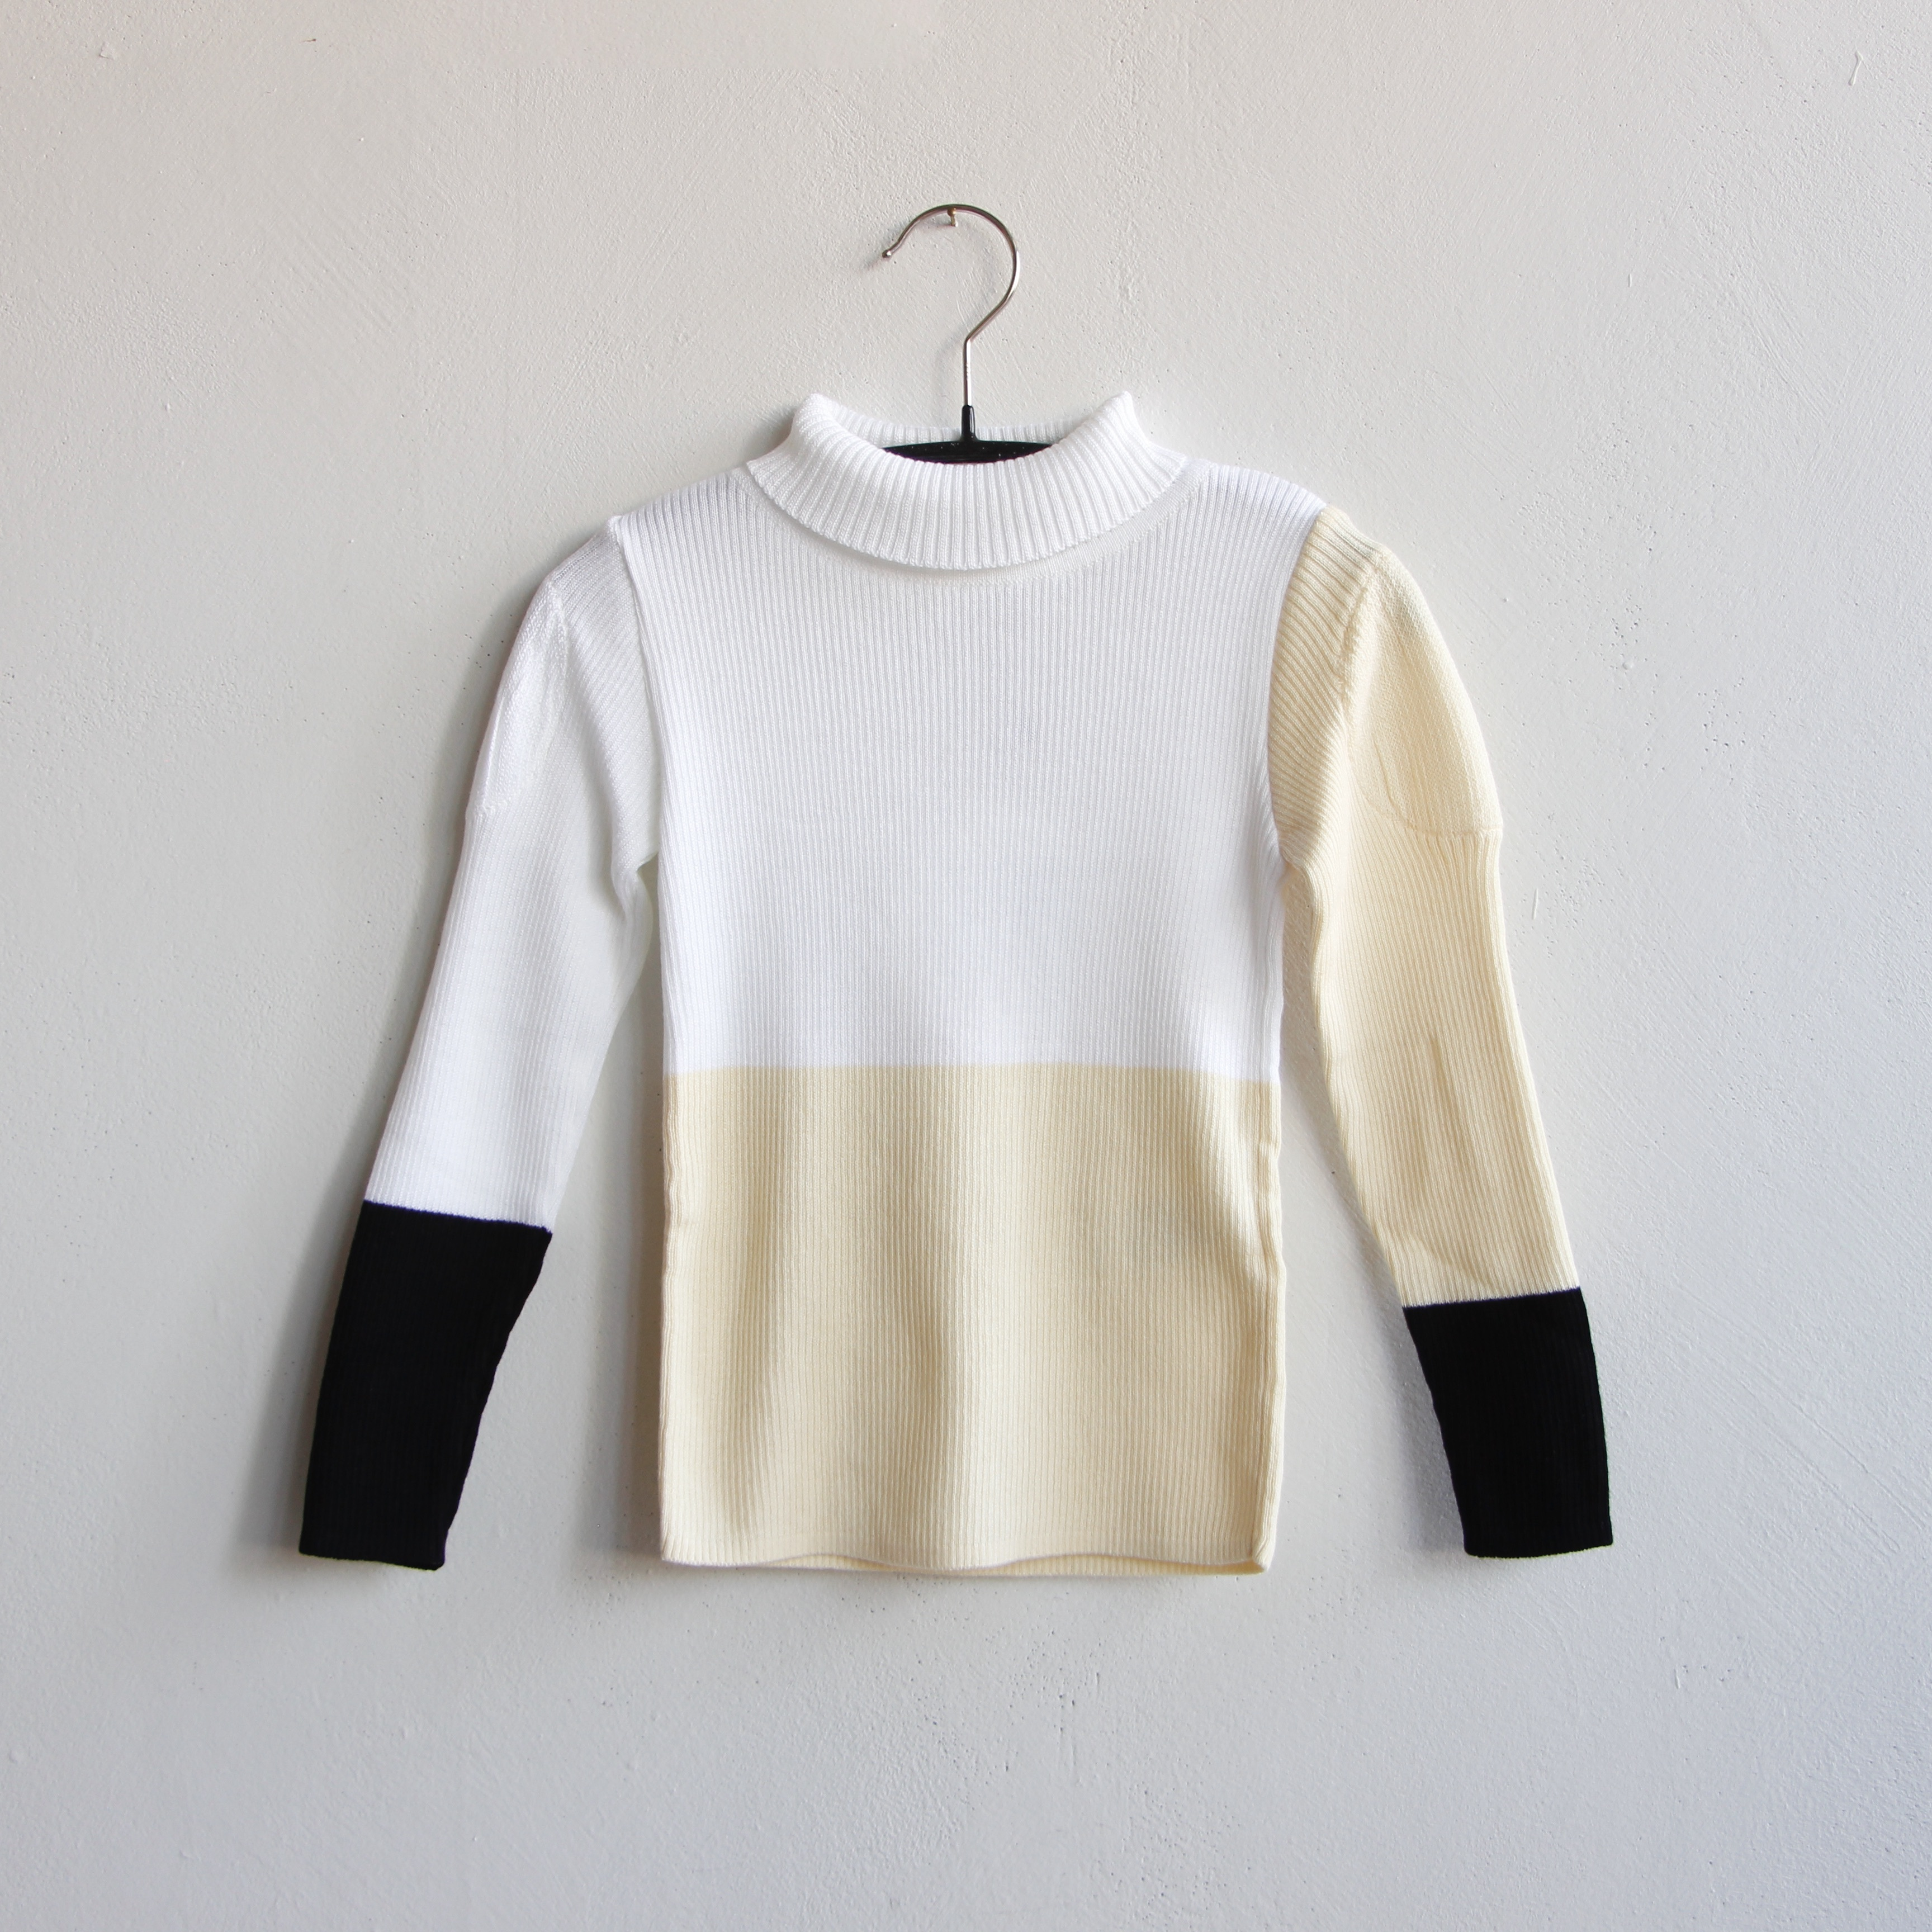 《frankygrow 2020AW》MULTI COLOR SWELL SHOULDER HIGH-NECK KNIT / white × ivory × black / S・M・L